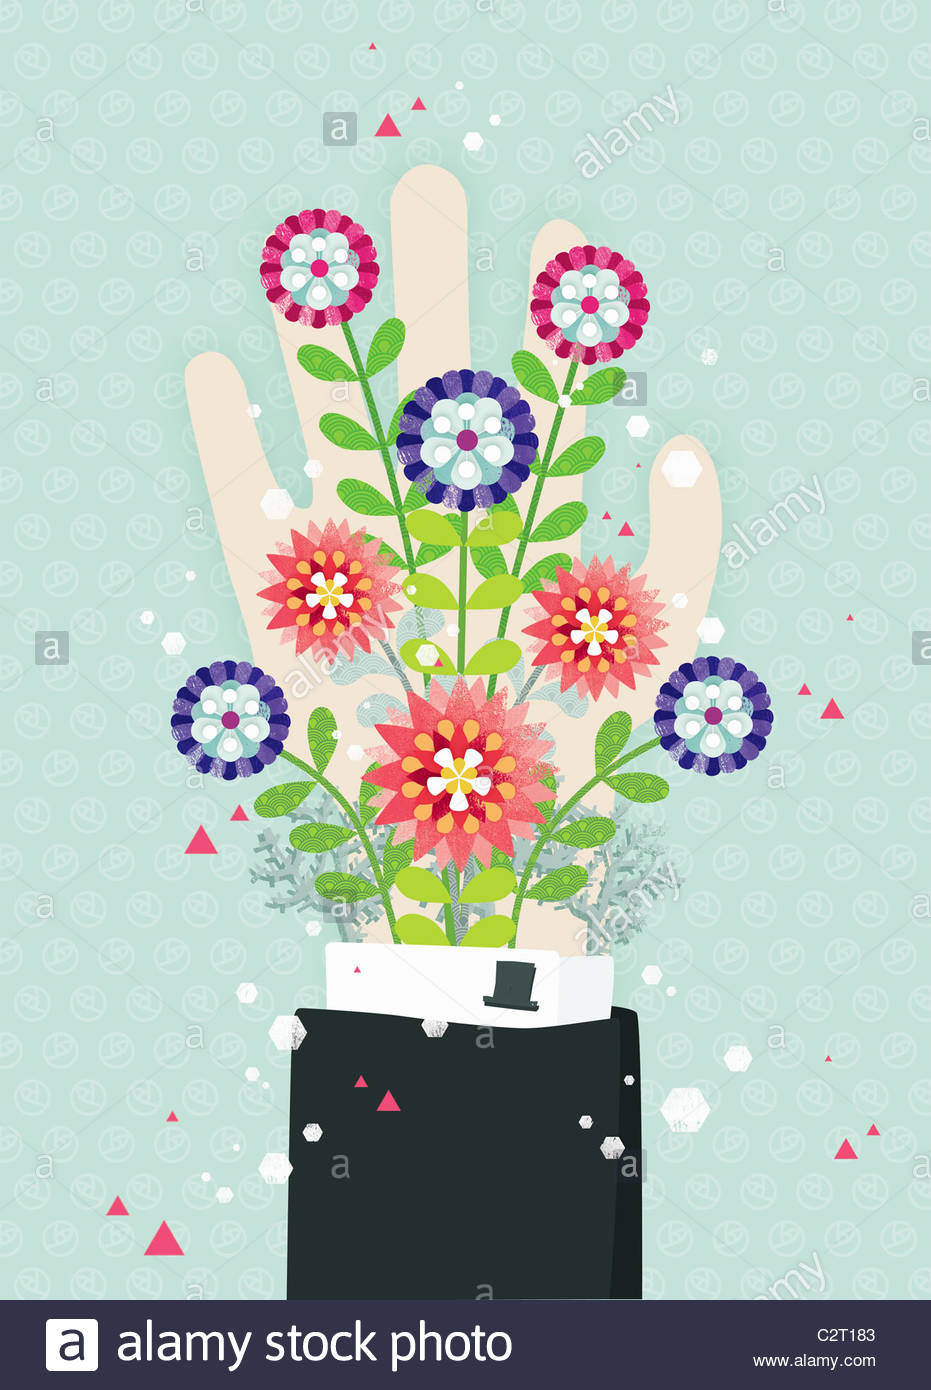 Blooming flowers coming from man's sleeve - Stock Image